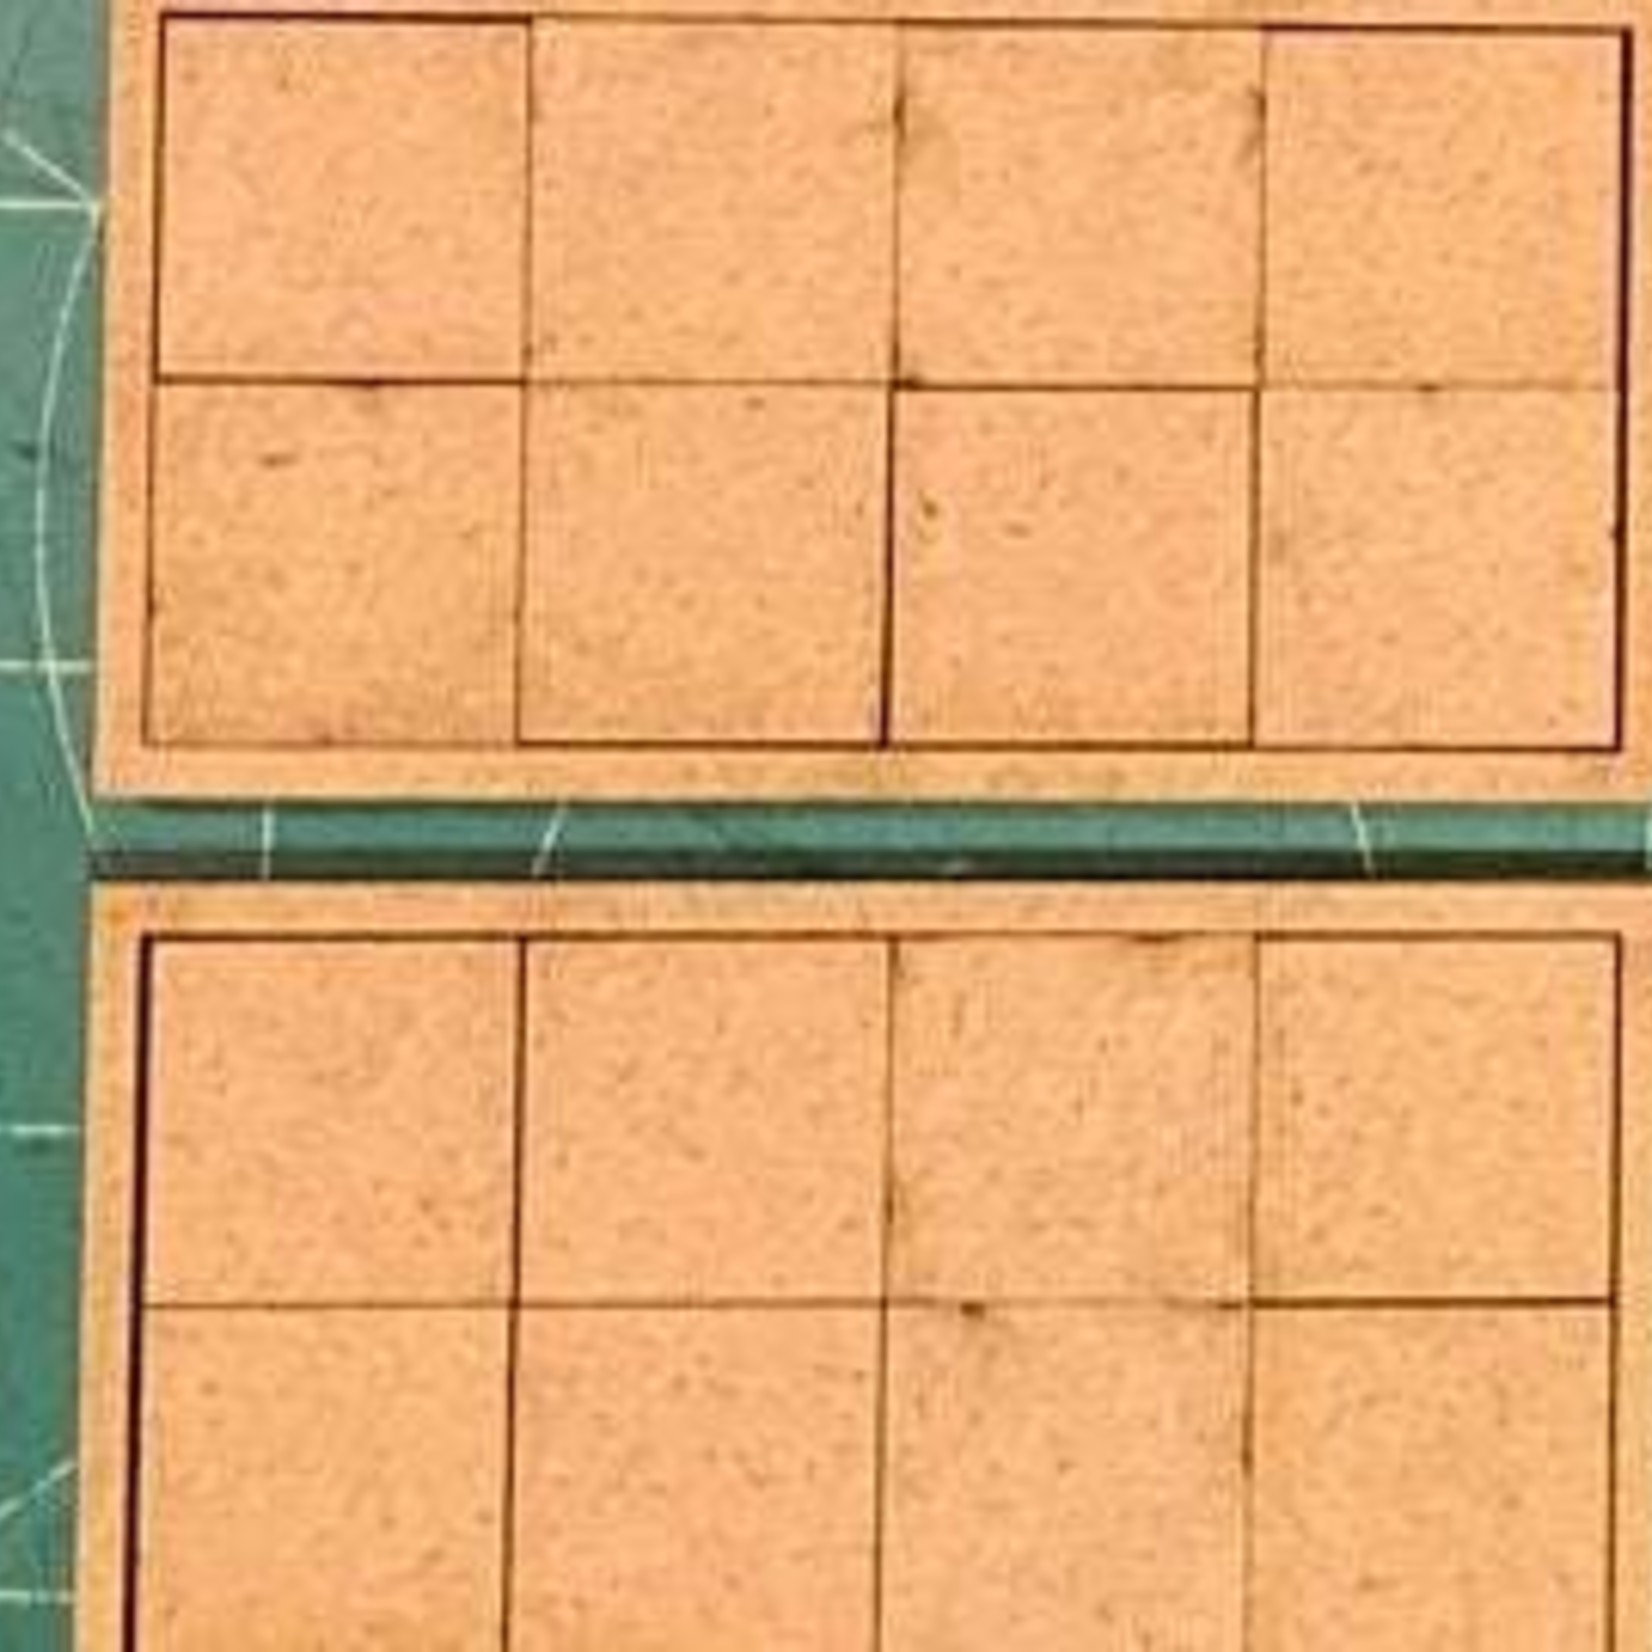 """Pair of 20mm """"Sharp Practice"""" Rank & File Tray 8 Figure - Squares"""